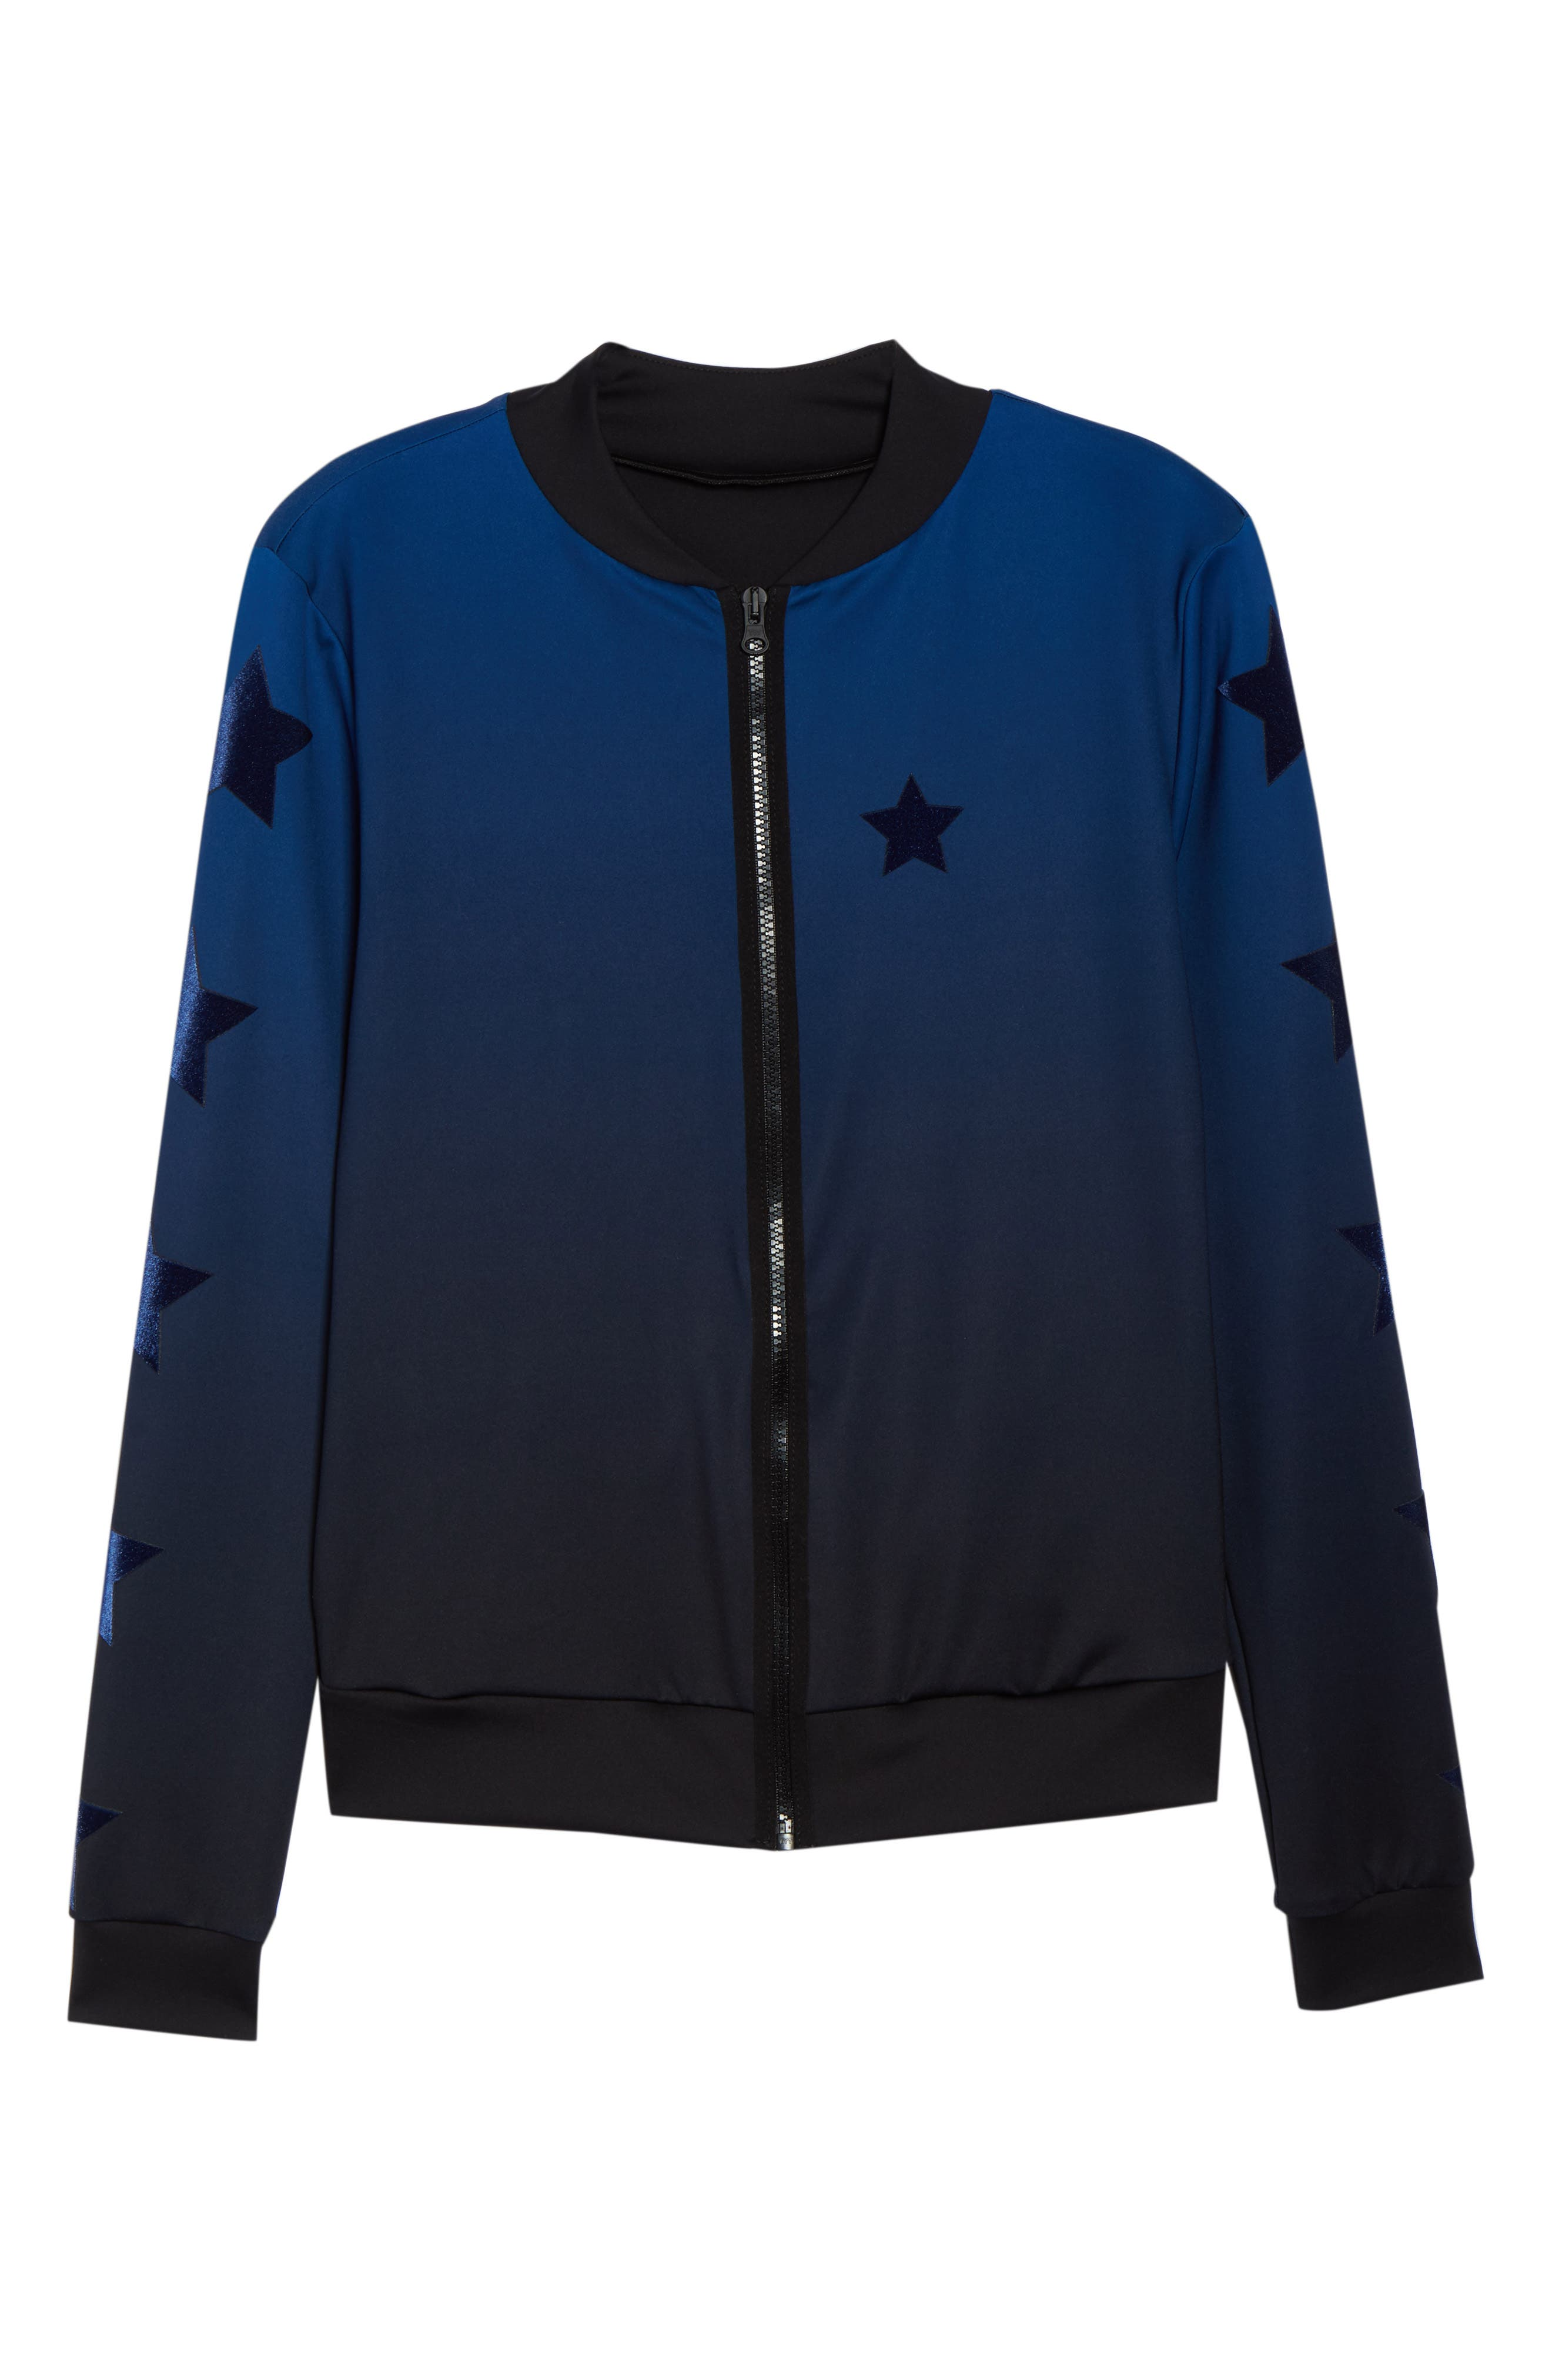 Gravity Gradient Track Jacket,                             Alternate thumbnail 7, color,                             406